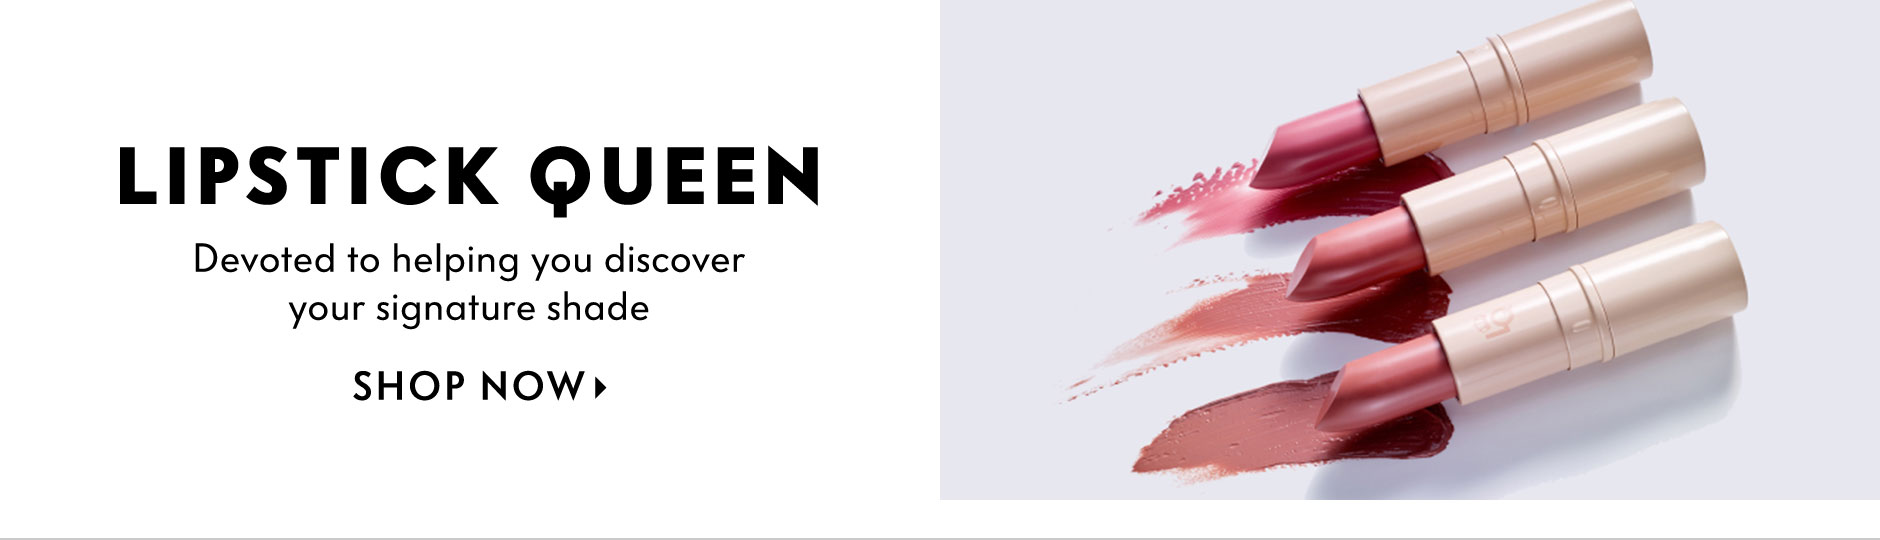 Lipstick Queen - Devoted to helping you discover your signature shade